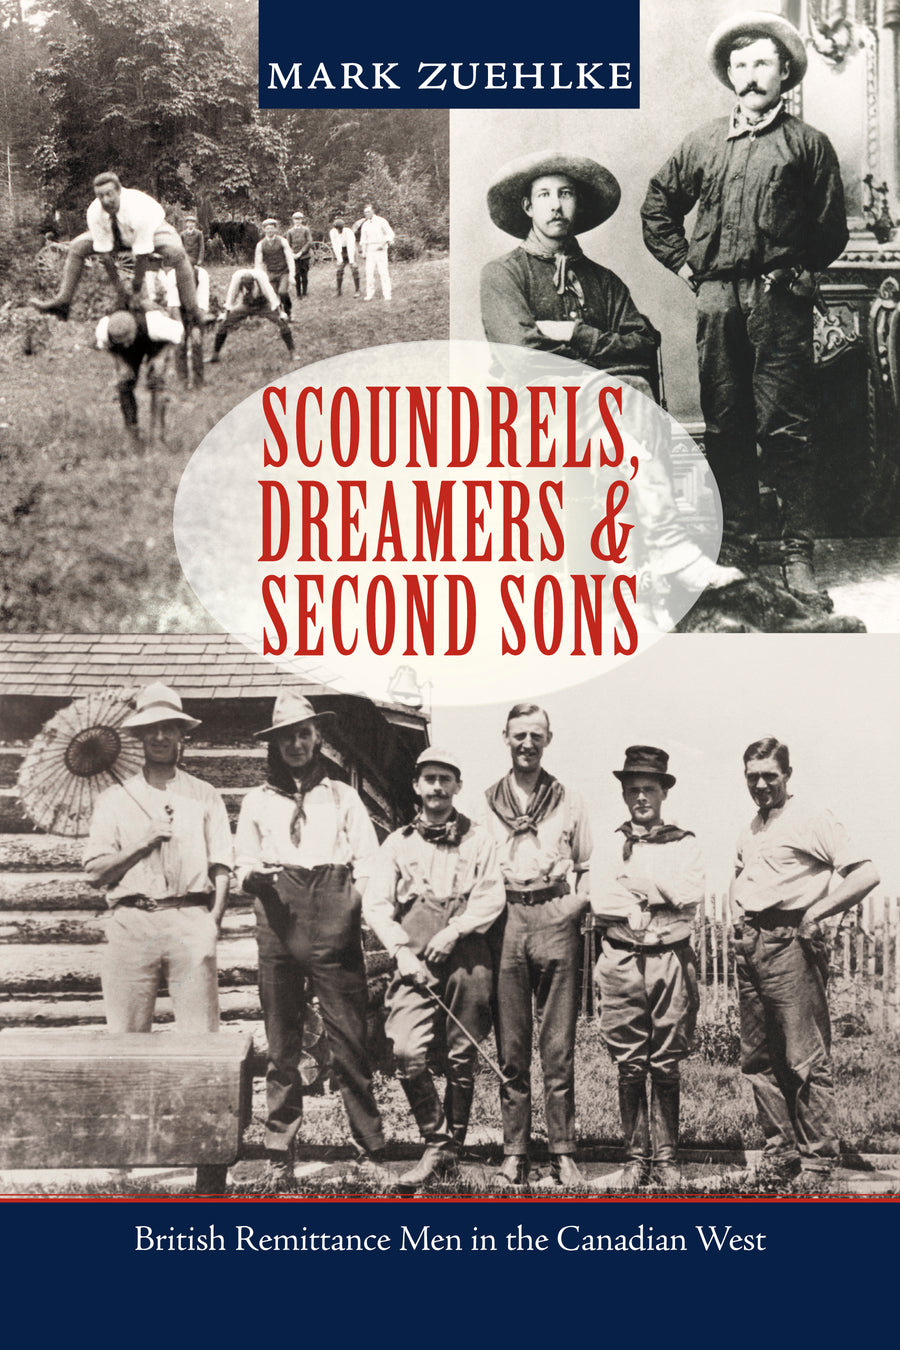 Scoundrels, Dreamers & Second Sons : British Remittance Men in the Canadian West